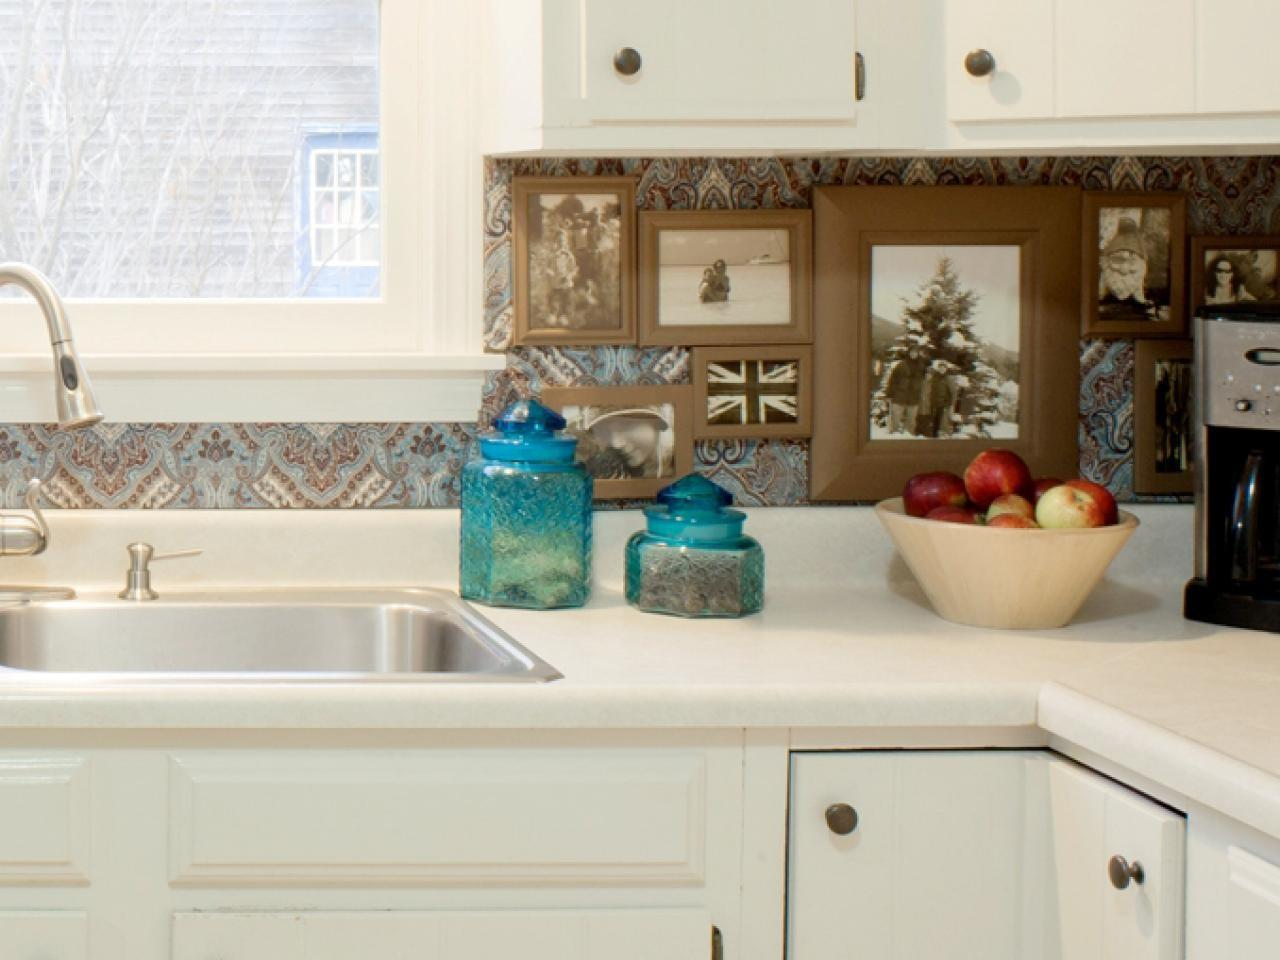 - Deluxe Kitchen Backsplash Diy Ideas That Will Make You Jealous Of